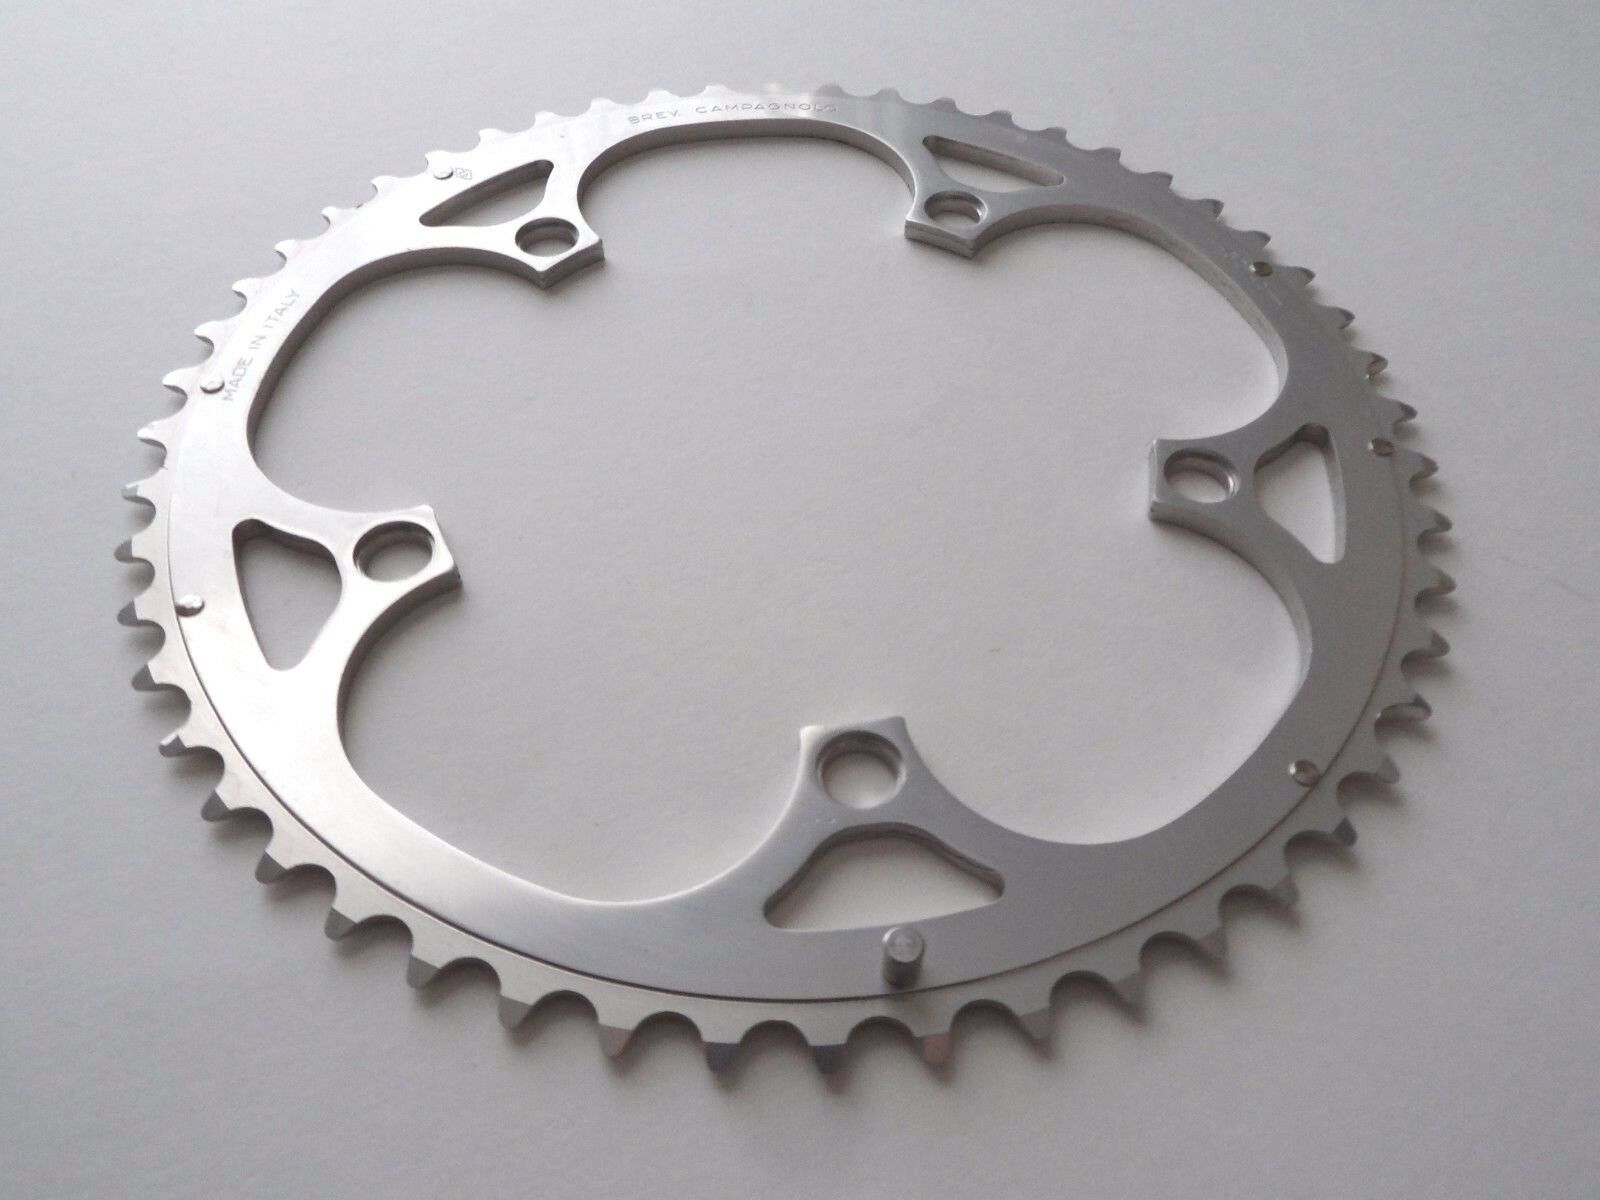 Rare  NOS Vintage 1980s Campagnolo C Record 52T chainring - 135BCD  fast shipping and best service